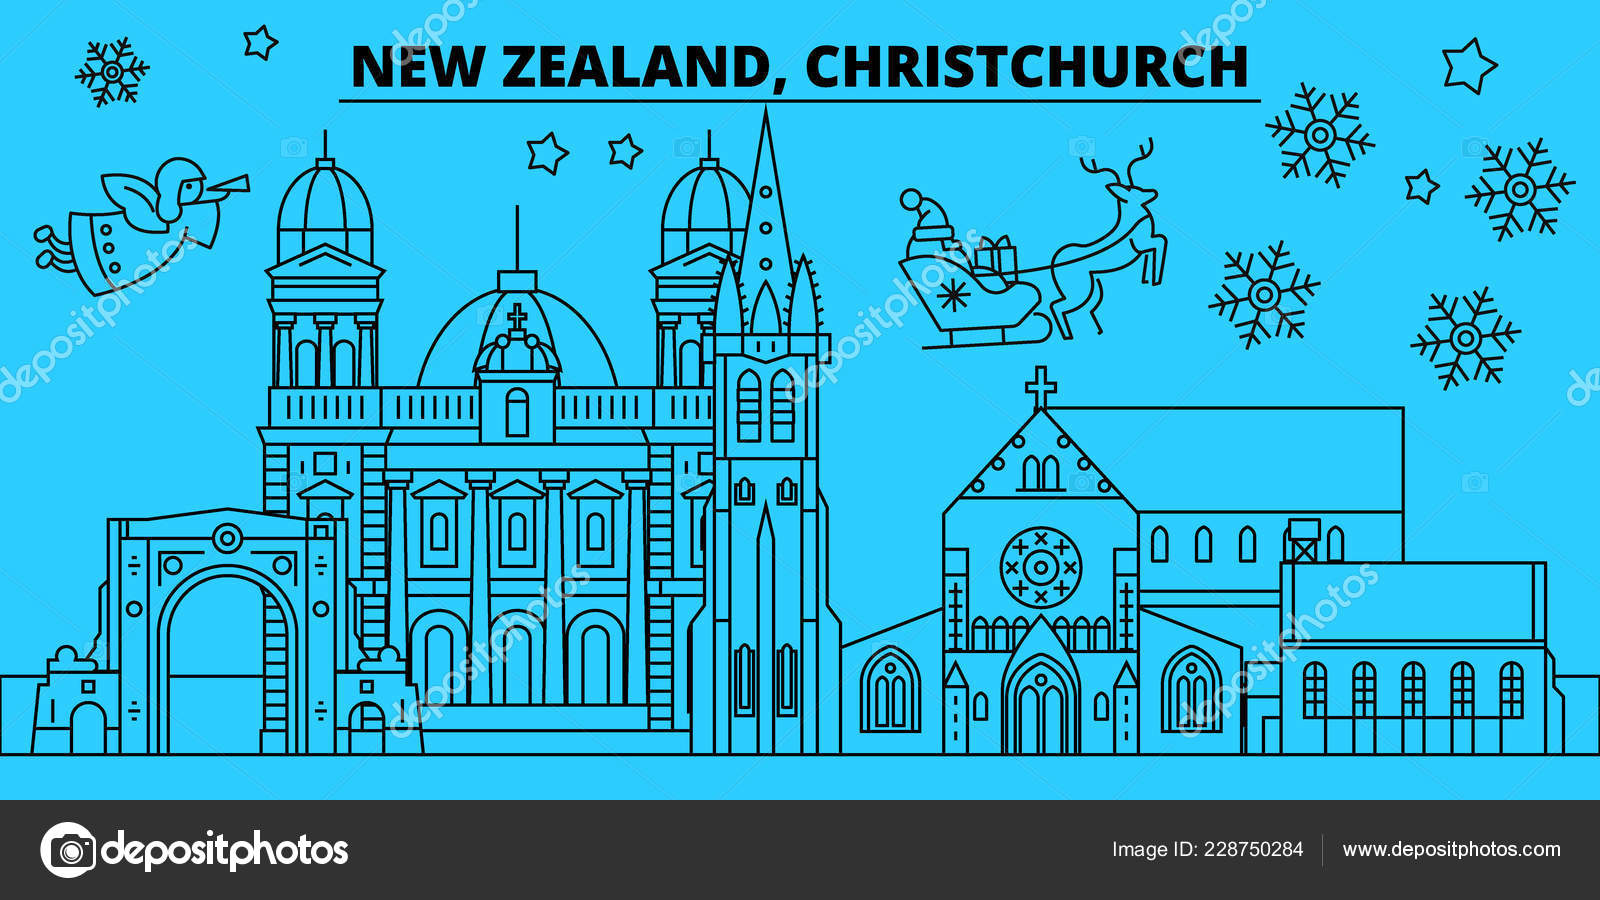 new zealand christchurch winter holidays skyline merry christmas happy new year decorated banner